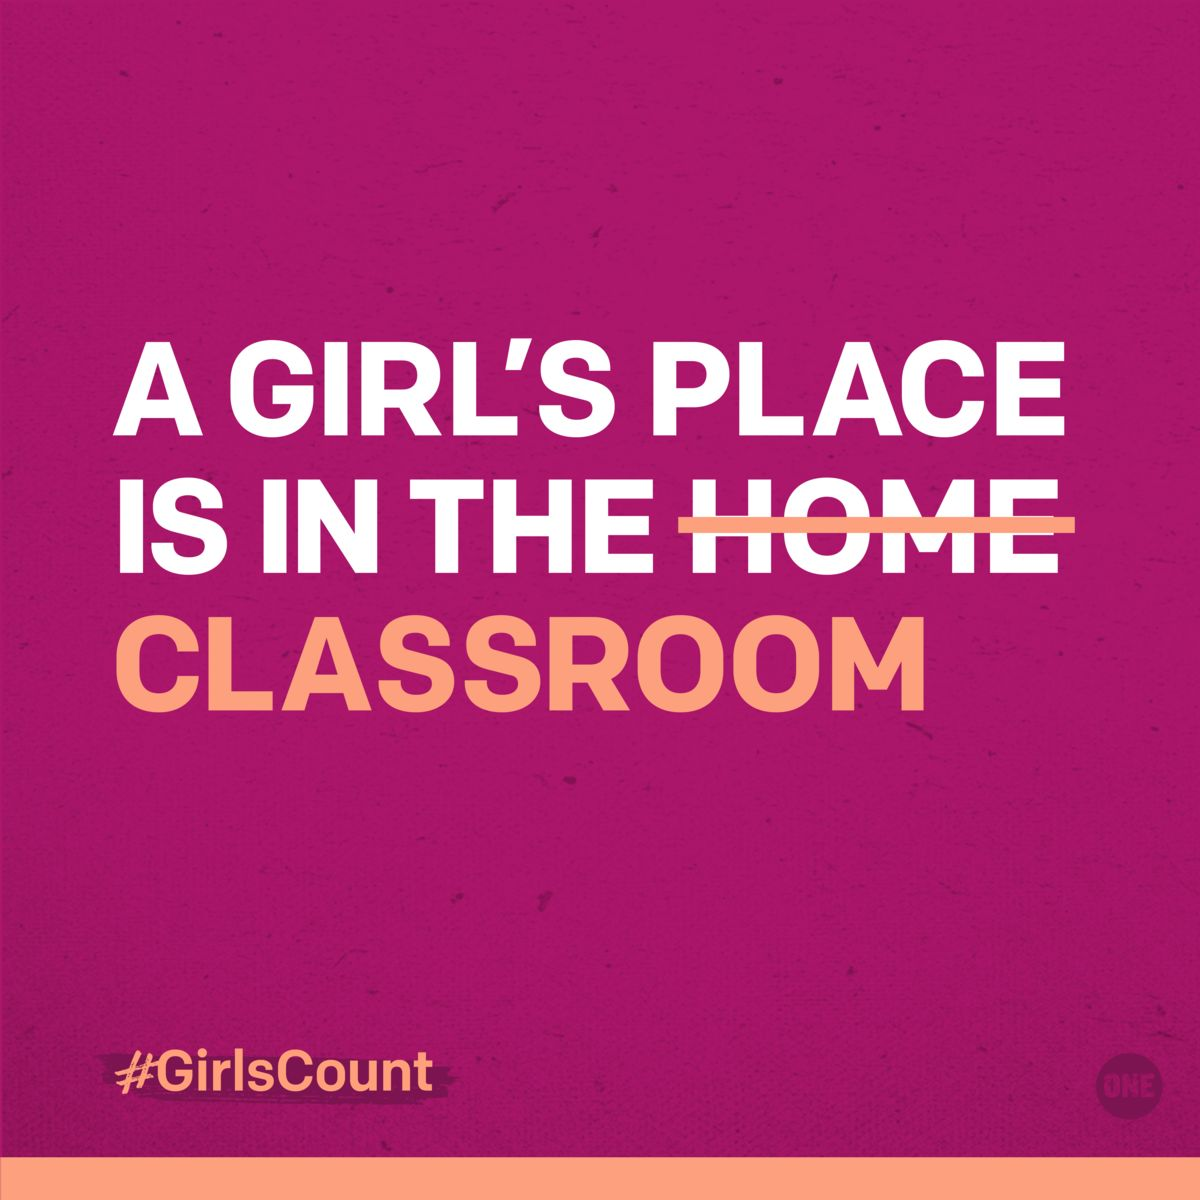 ONE image for IWD2017 campaign, a Girl's place is in the classroom